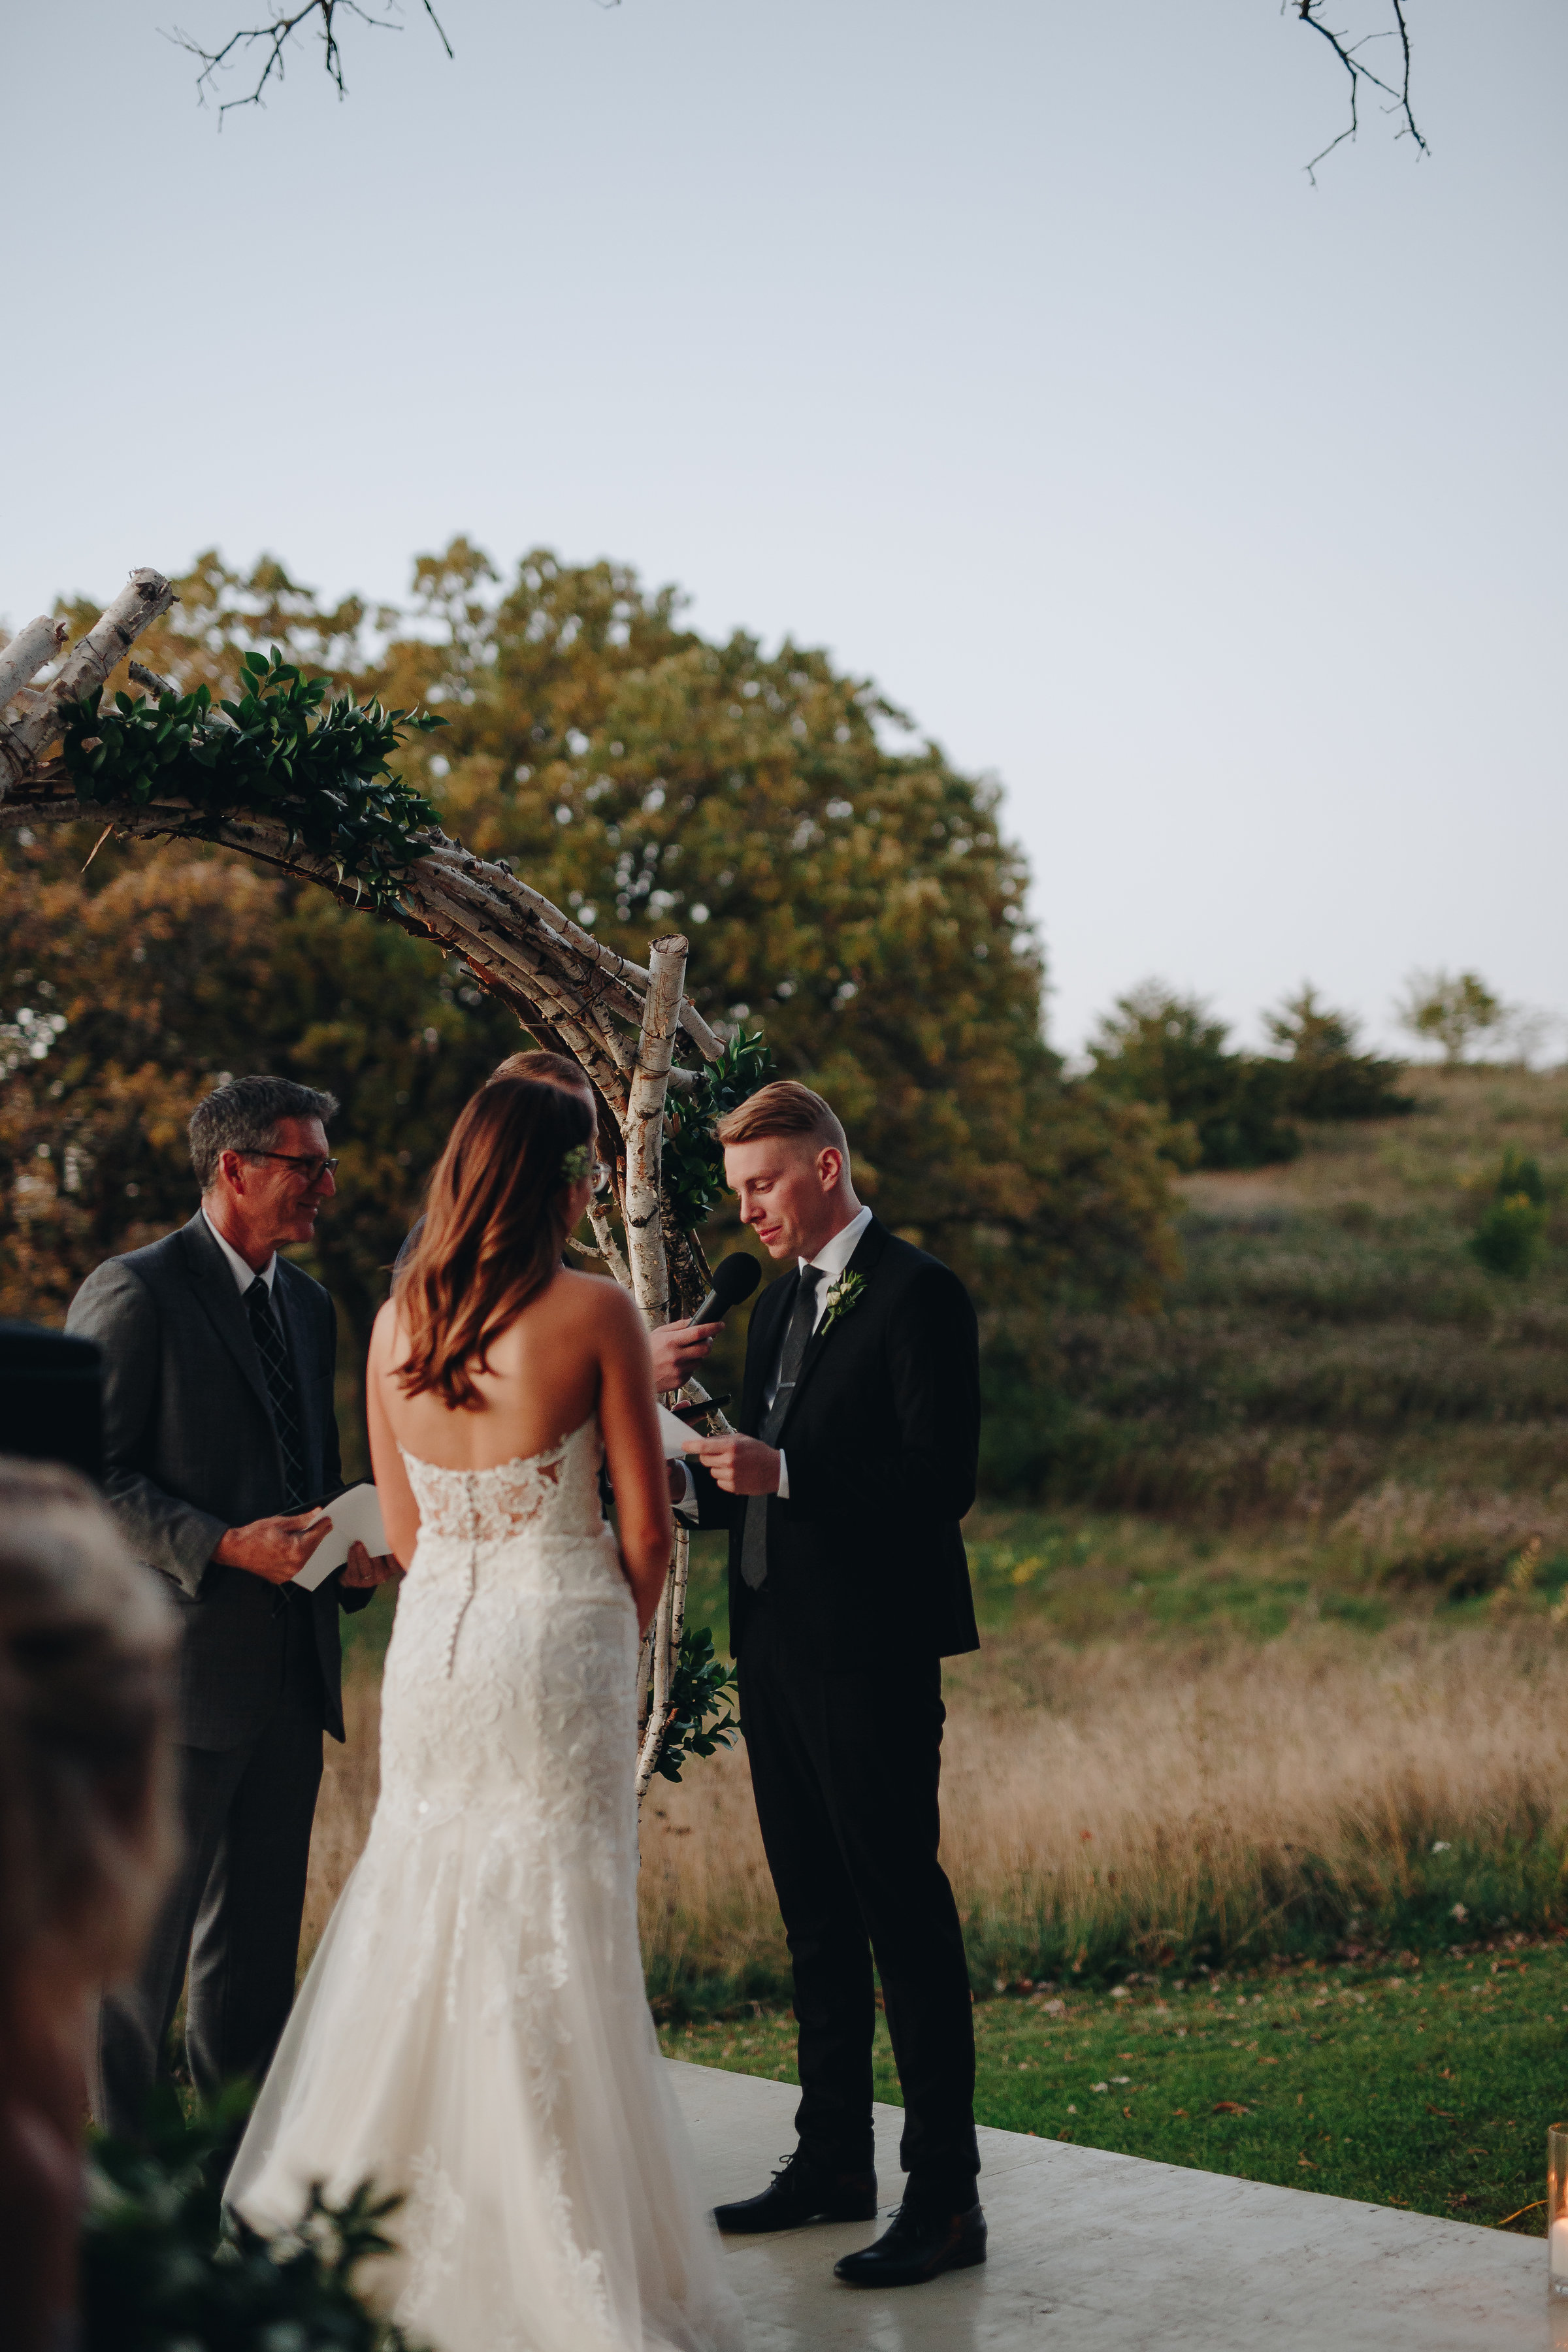 Groom reading vows to his bride at dusk wedding ceremony in Minnesota